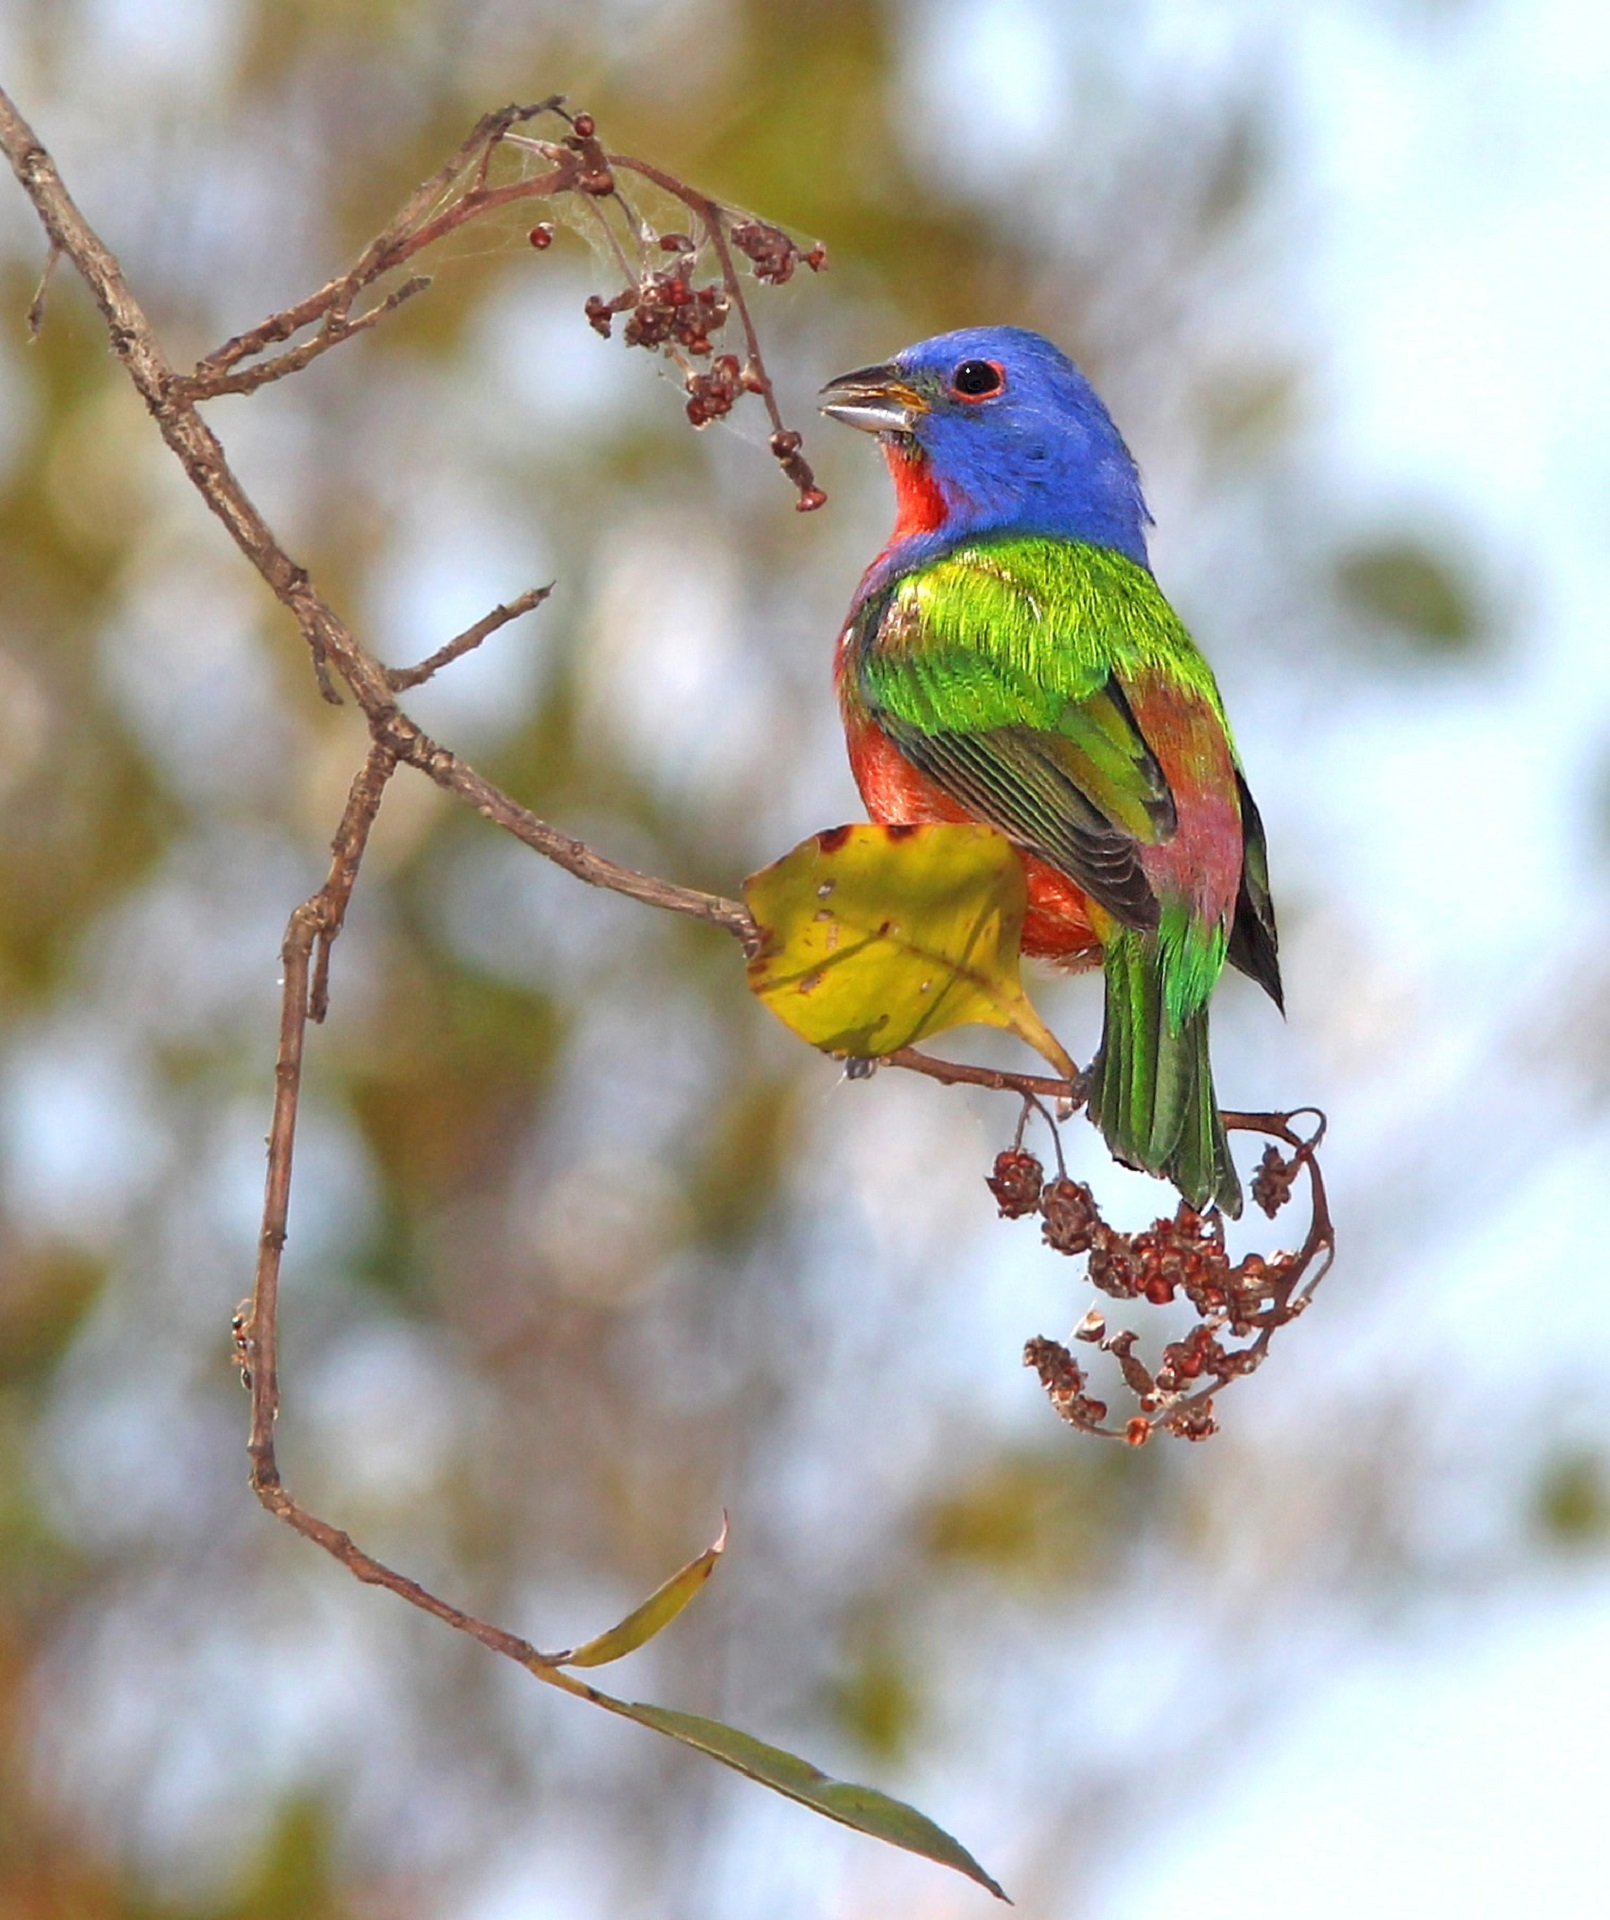 Painted bunting photo